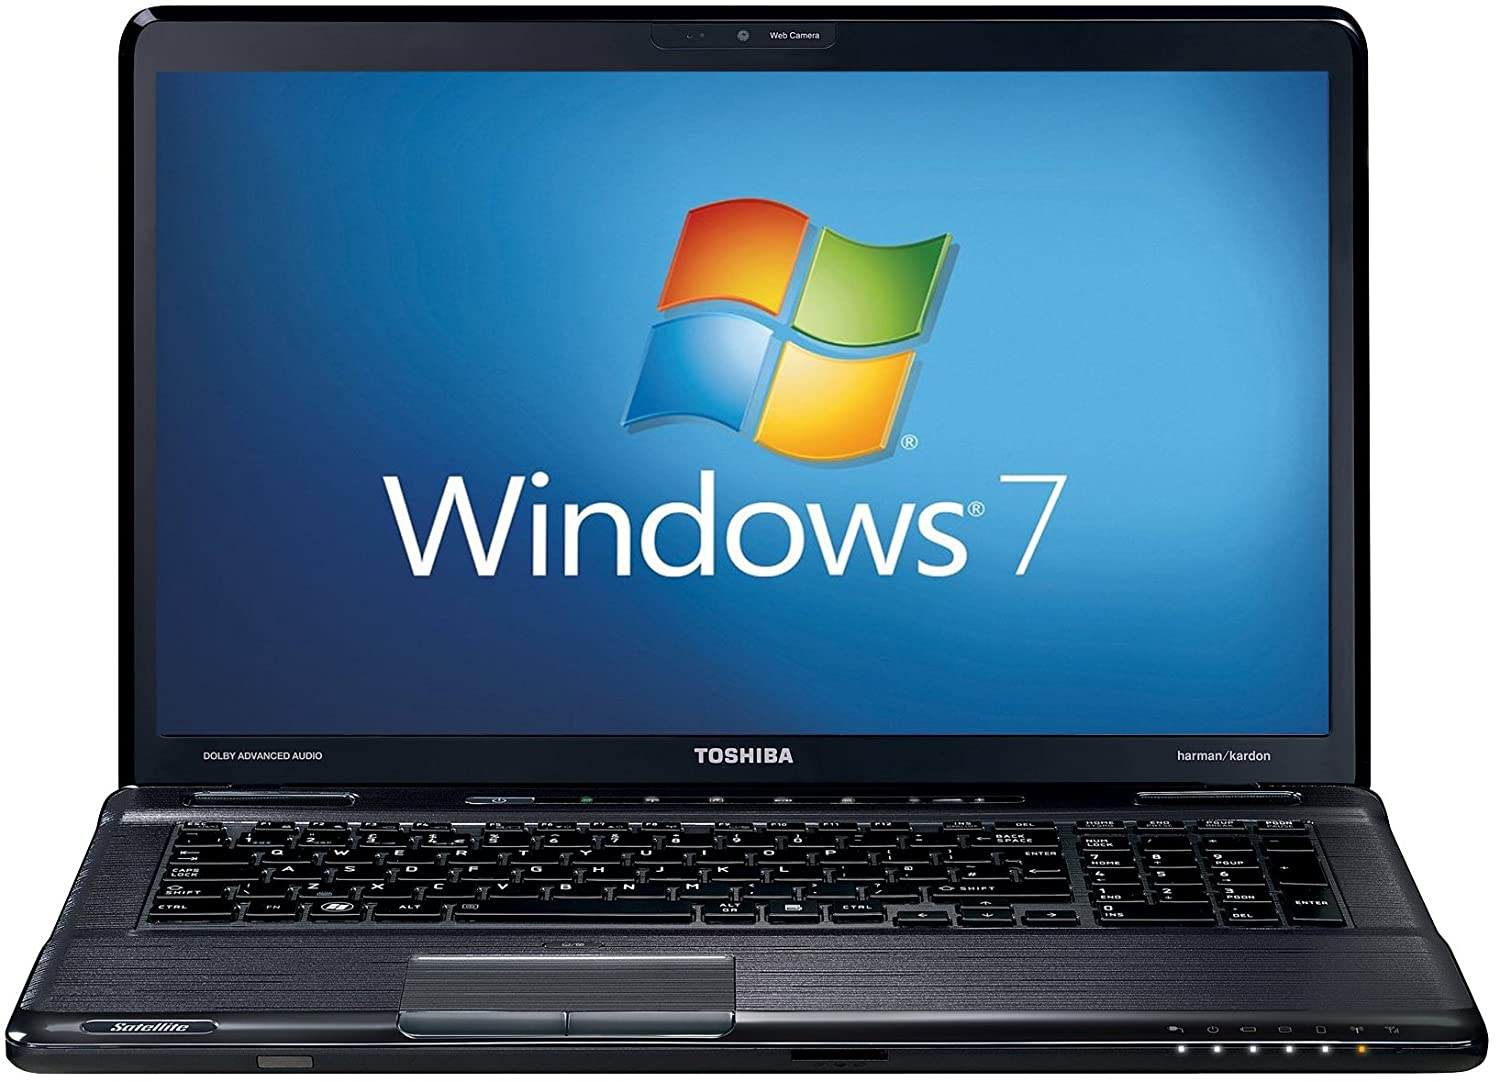 TOSHIBA SATELLITE P770 FACE RECOGNITION DRIVER WINDOWS 7 (2019)